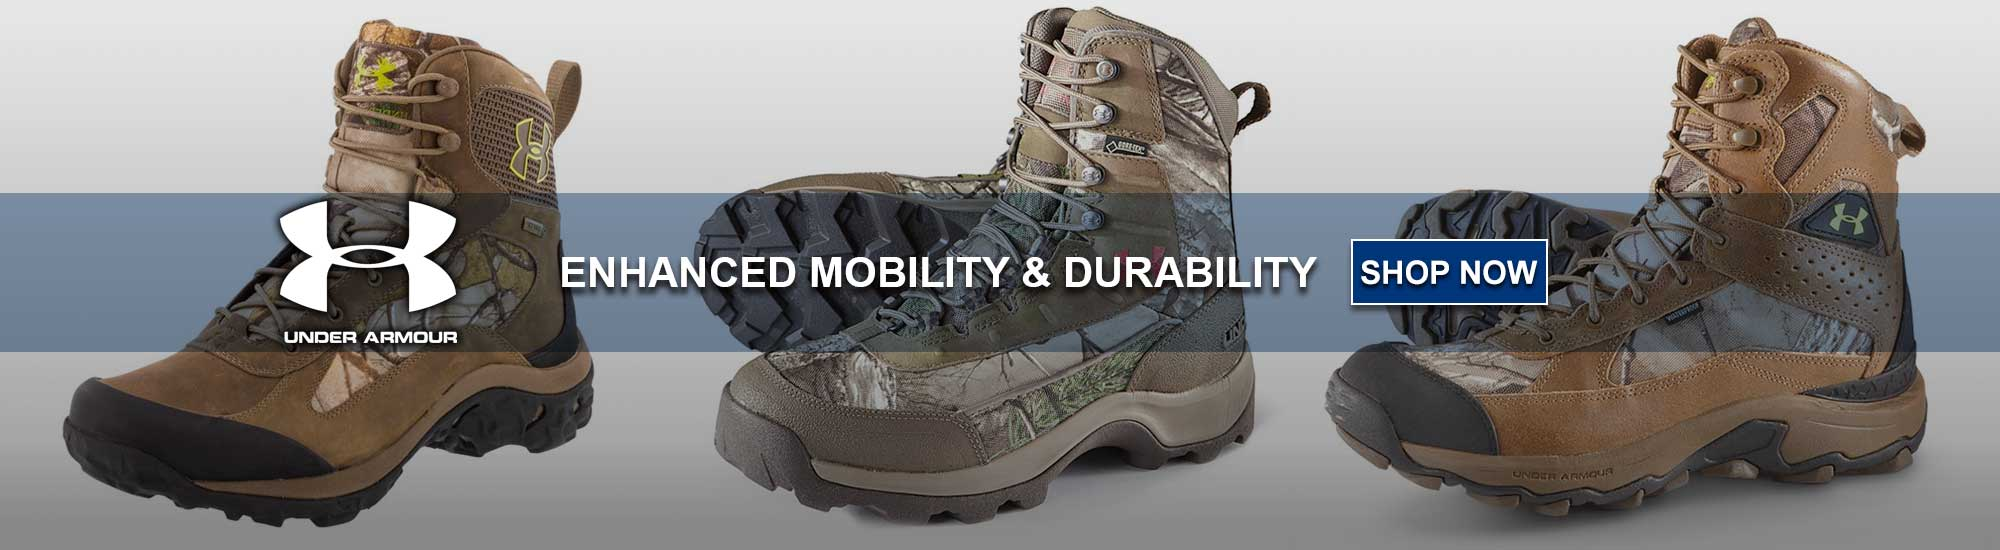 Shop Under Armour Tactical Boots